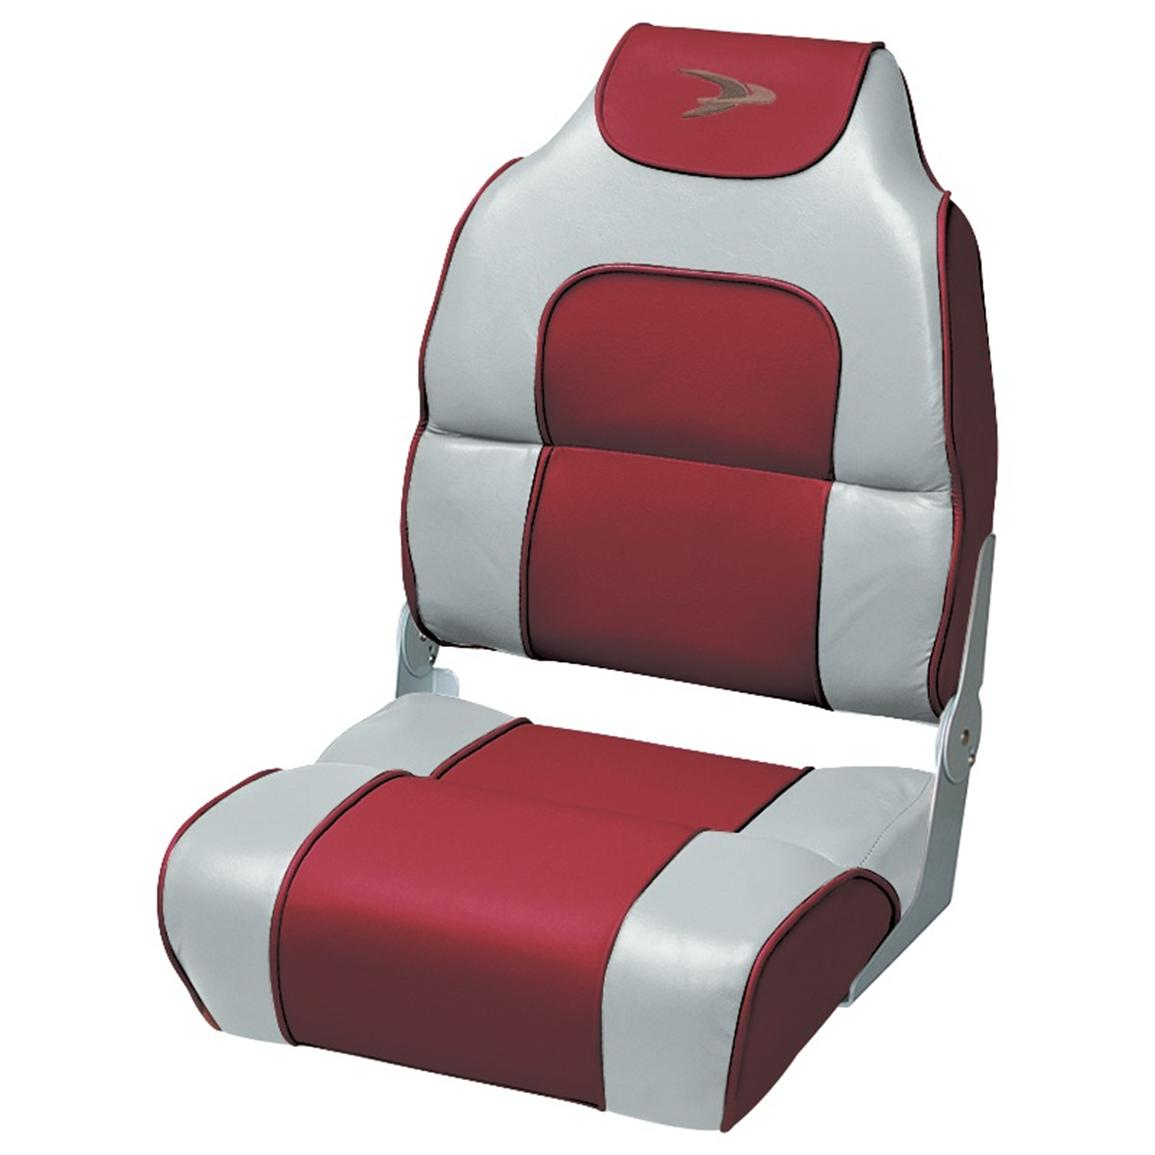 Wise® Premium Deluxe Hi-back Fishing Boat Seat, Marble / Red